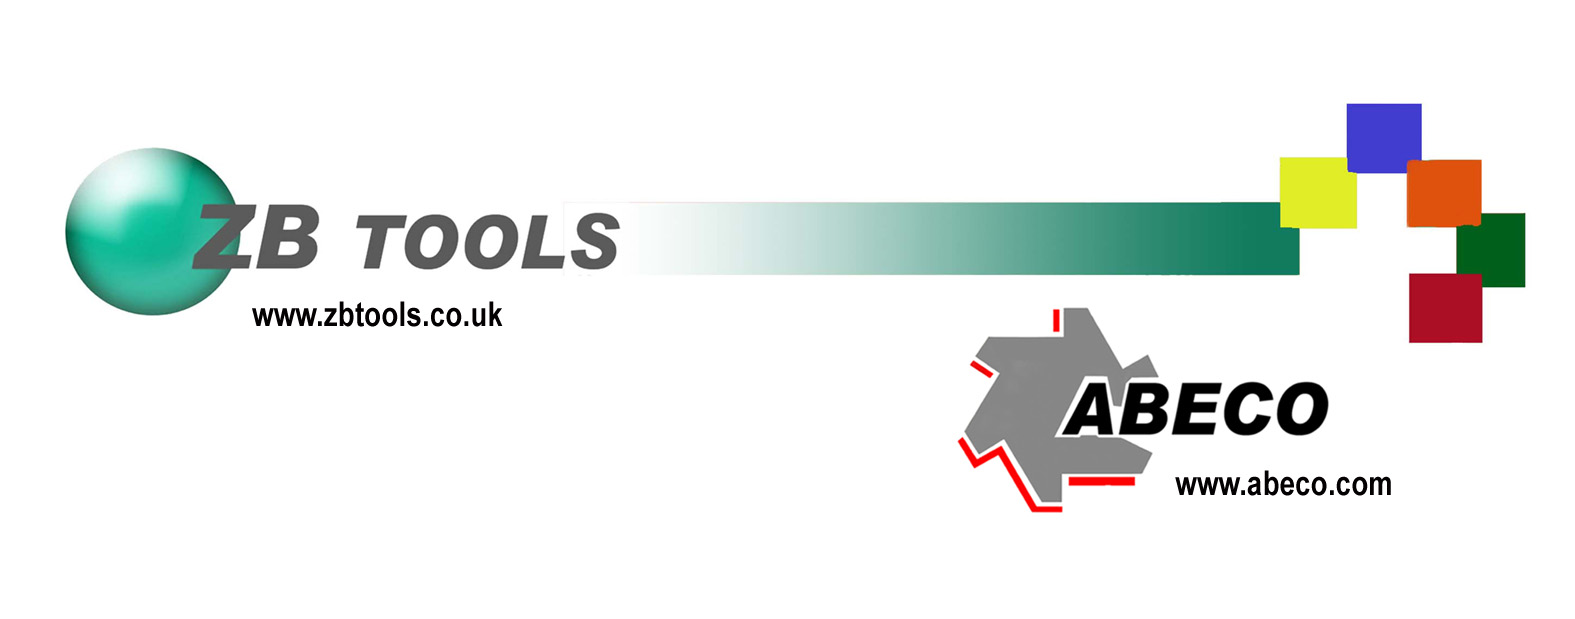 ABECO / ZB TOOLS - Tools for crimping terminals and connectors